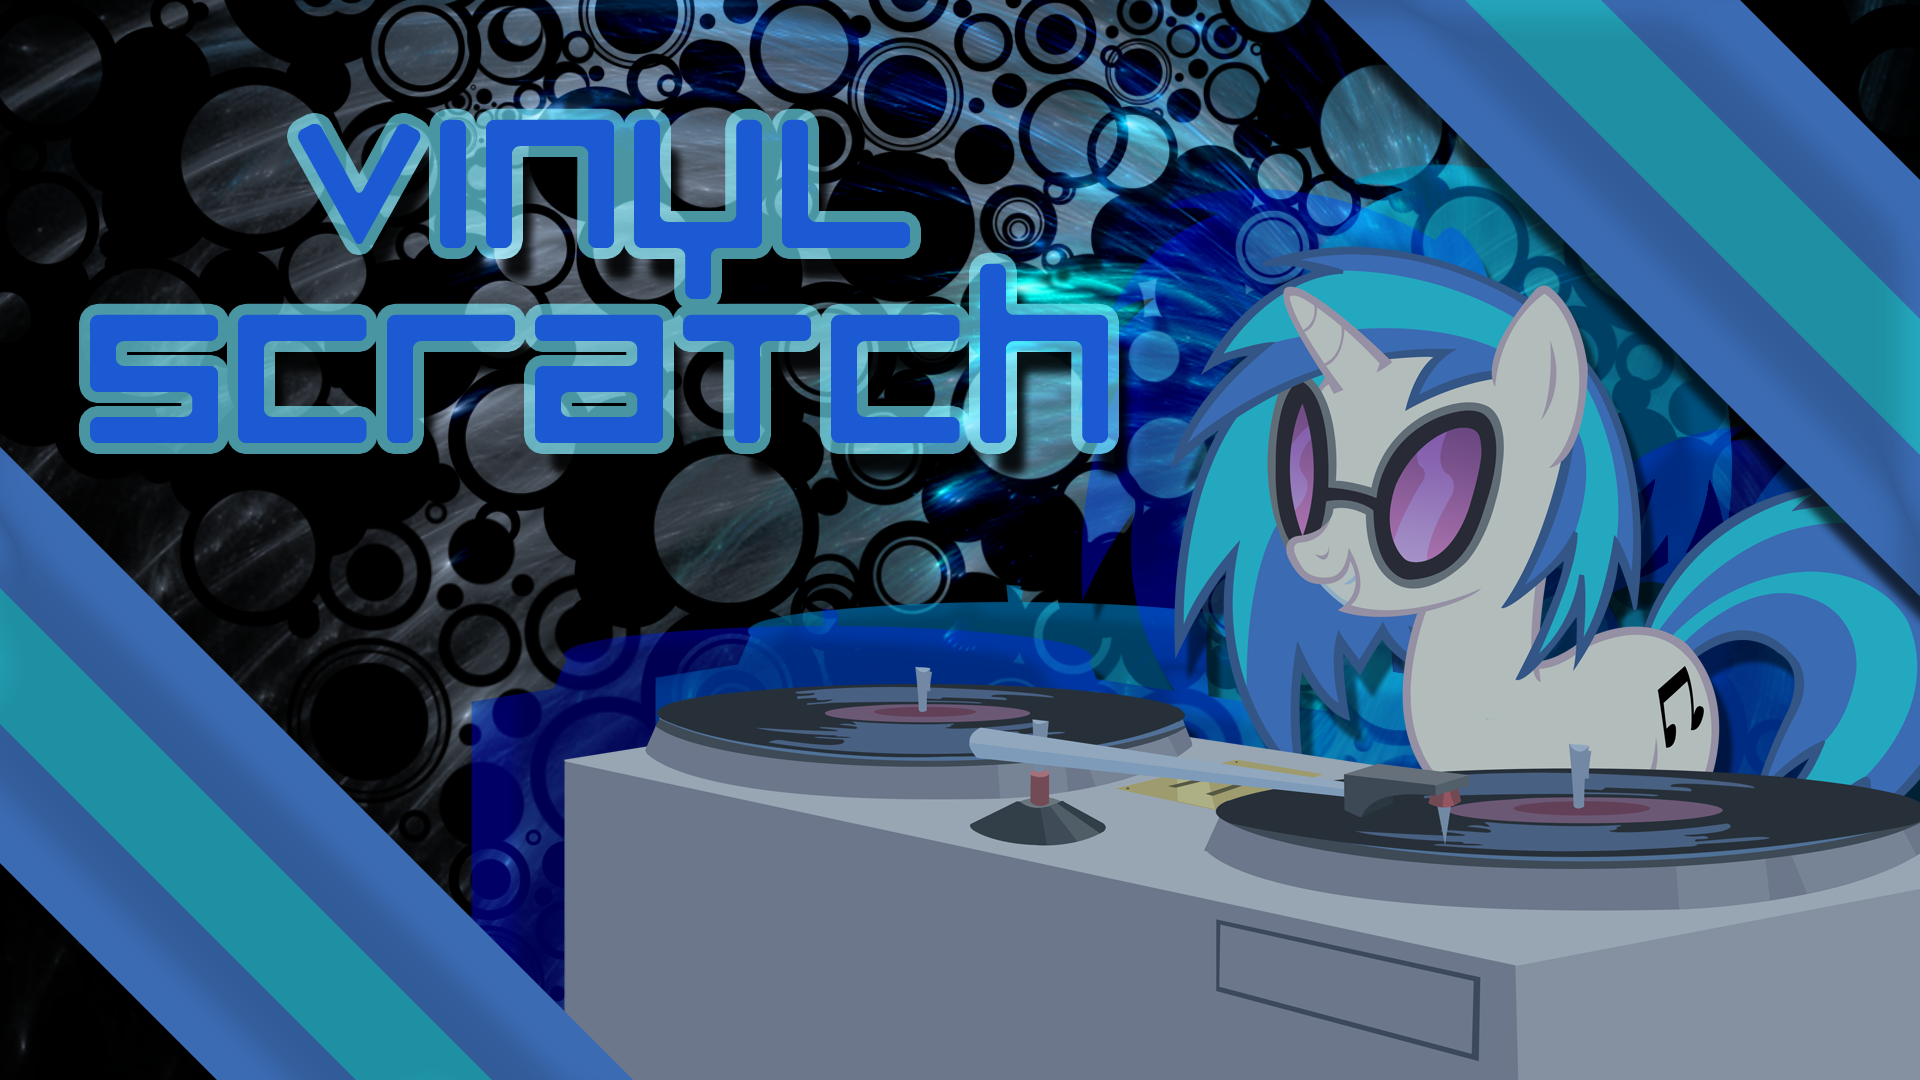 Vinyl Scratch Wallpaper by AK71 and Fiftyniner